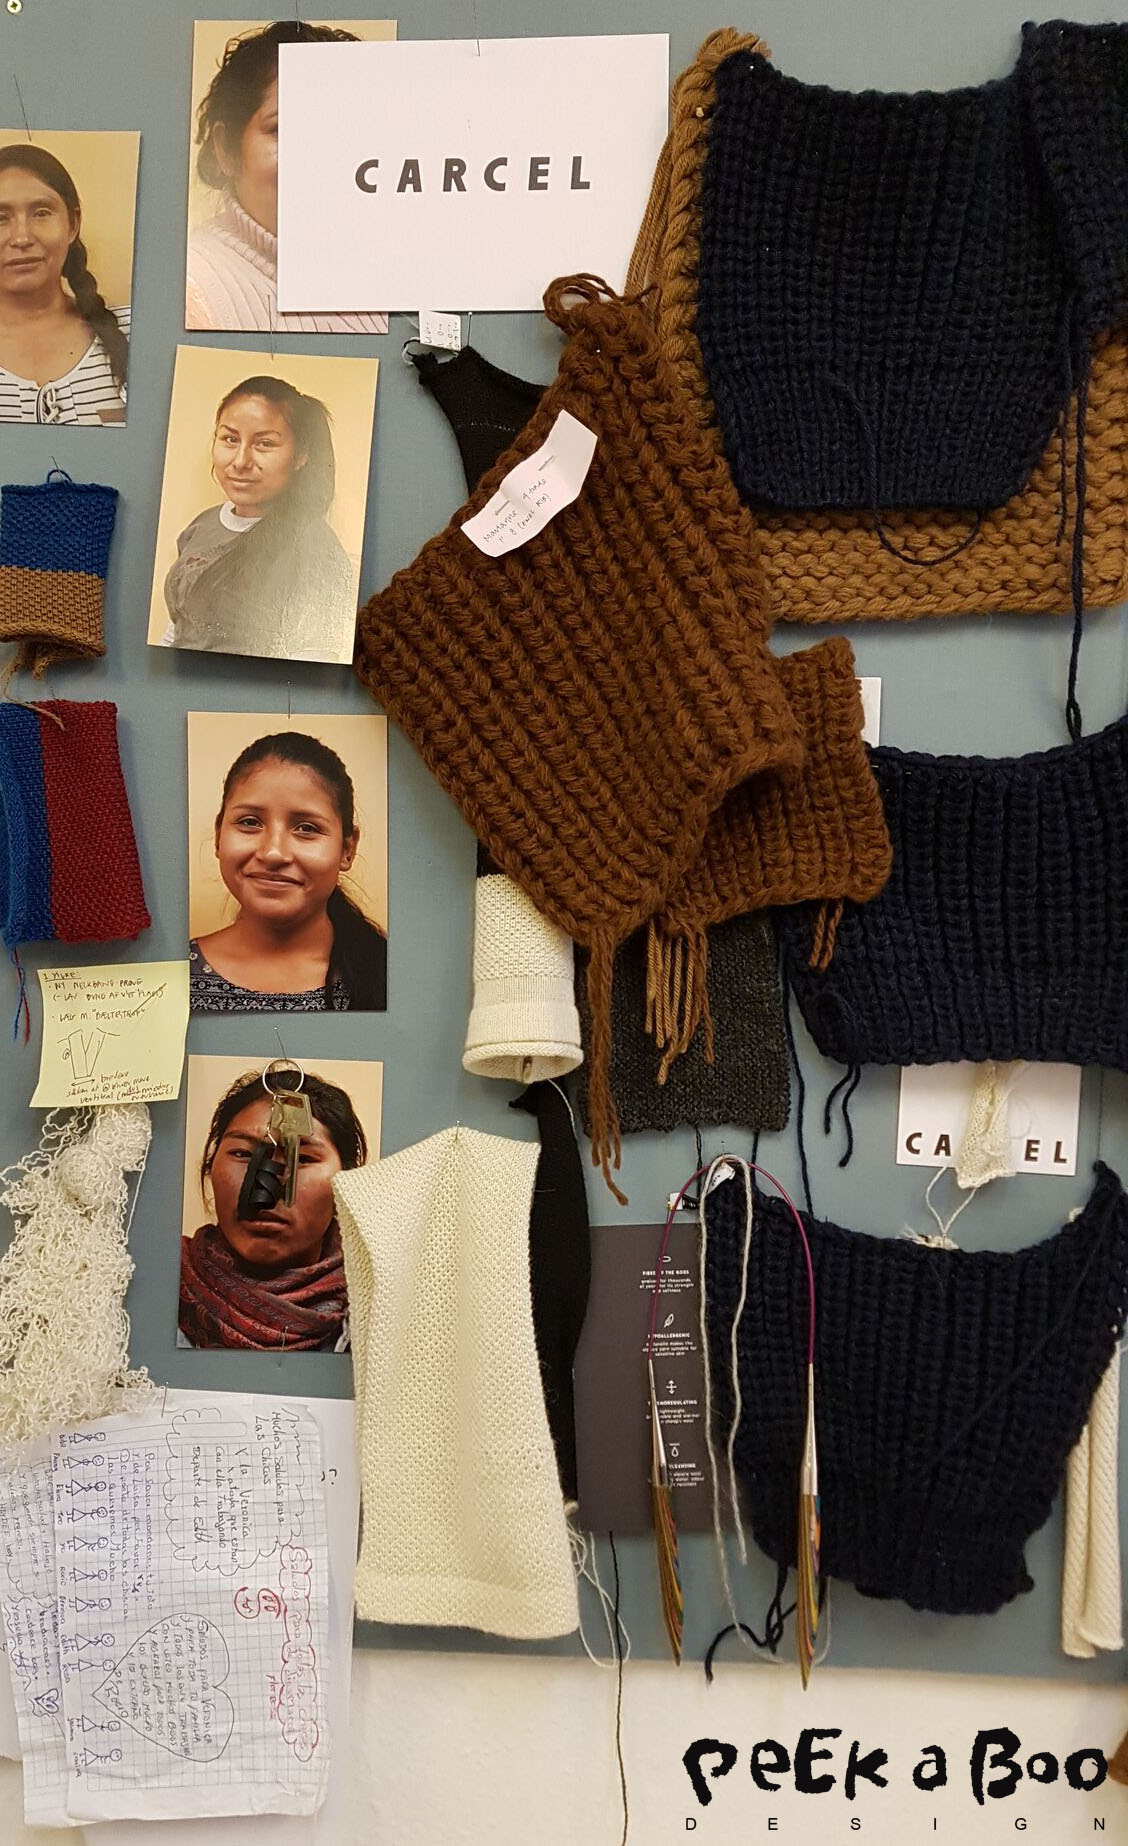 moodboard with knit samples and photos of the knitters in the prison. And even letters they have written ti the danish team.